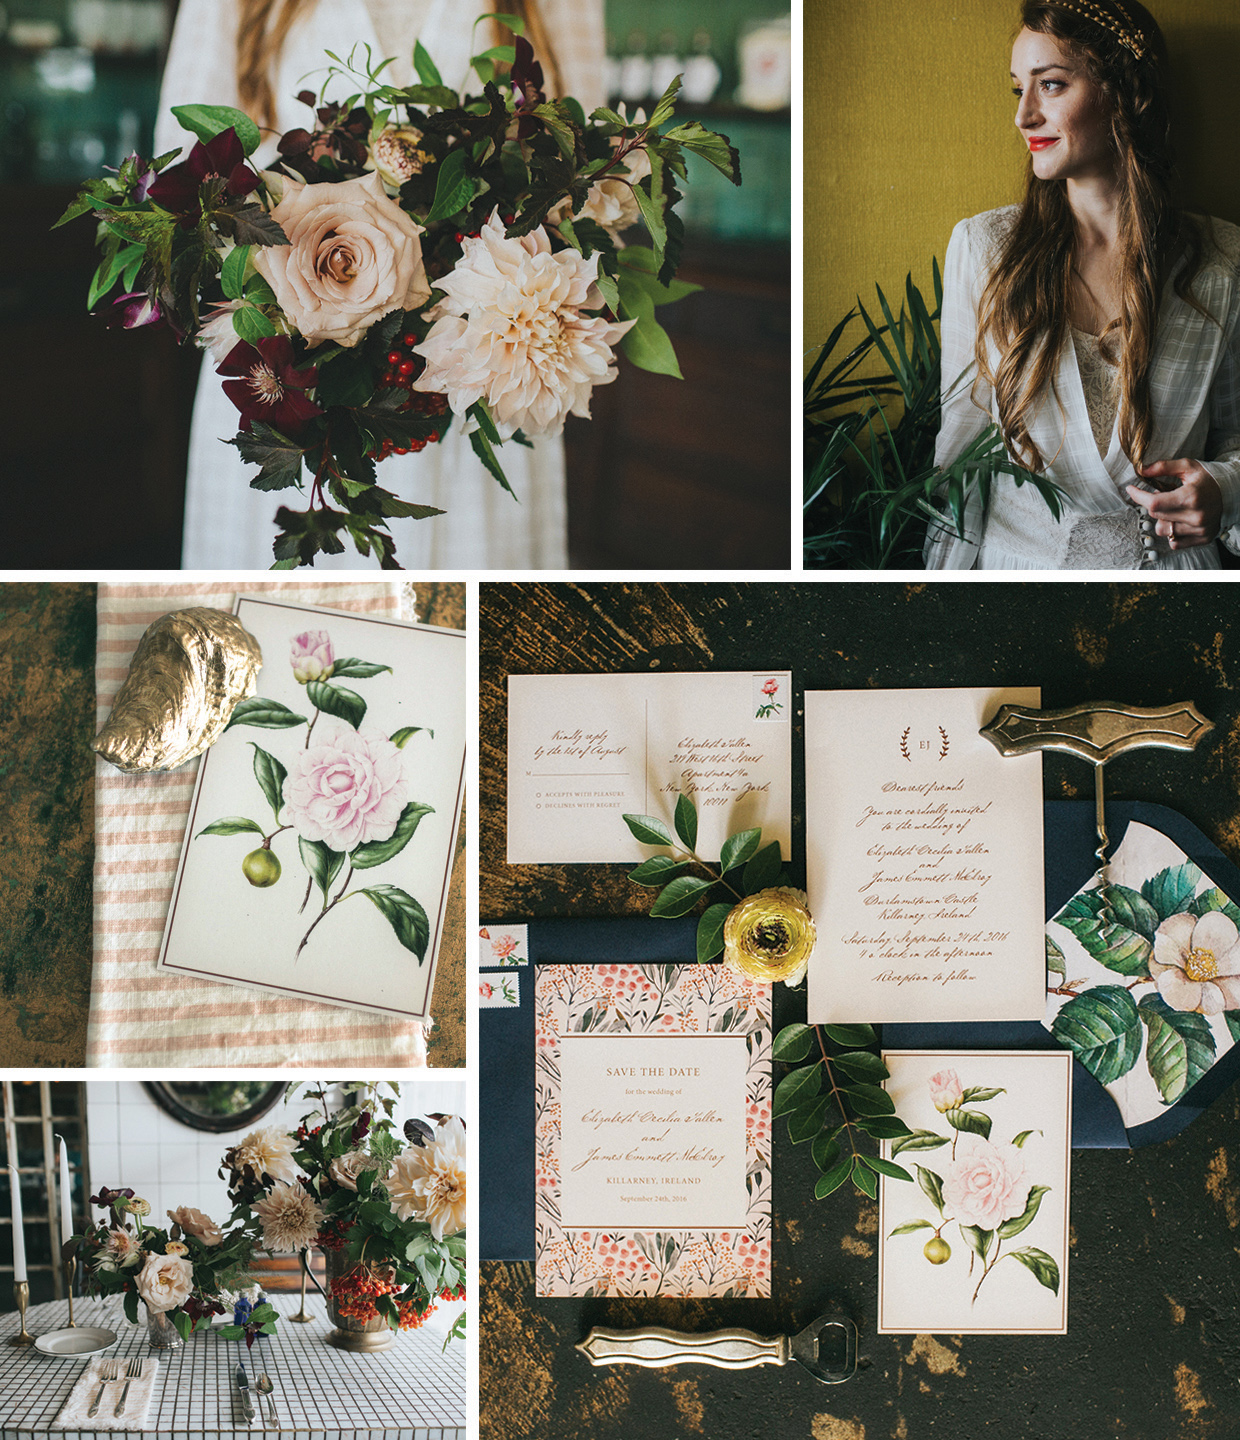 Vintage wedding inspiration, romantic wedding invitations by Fine Day Press